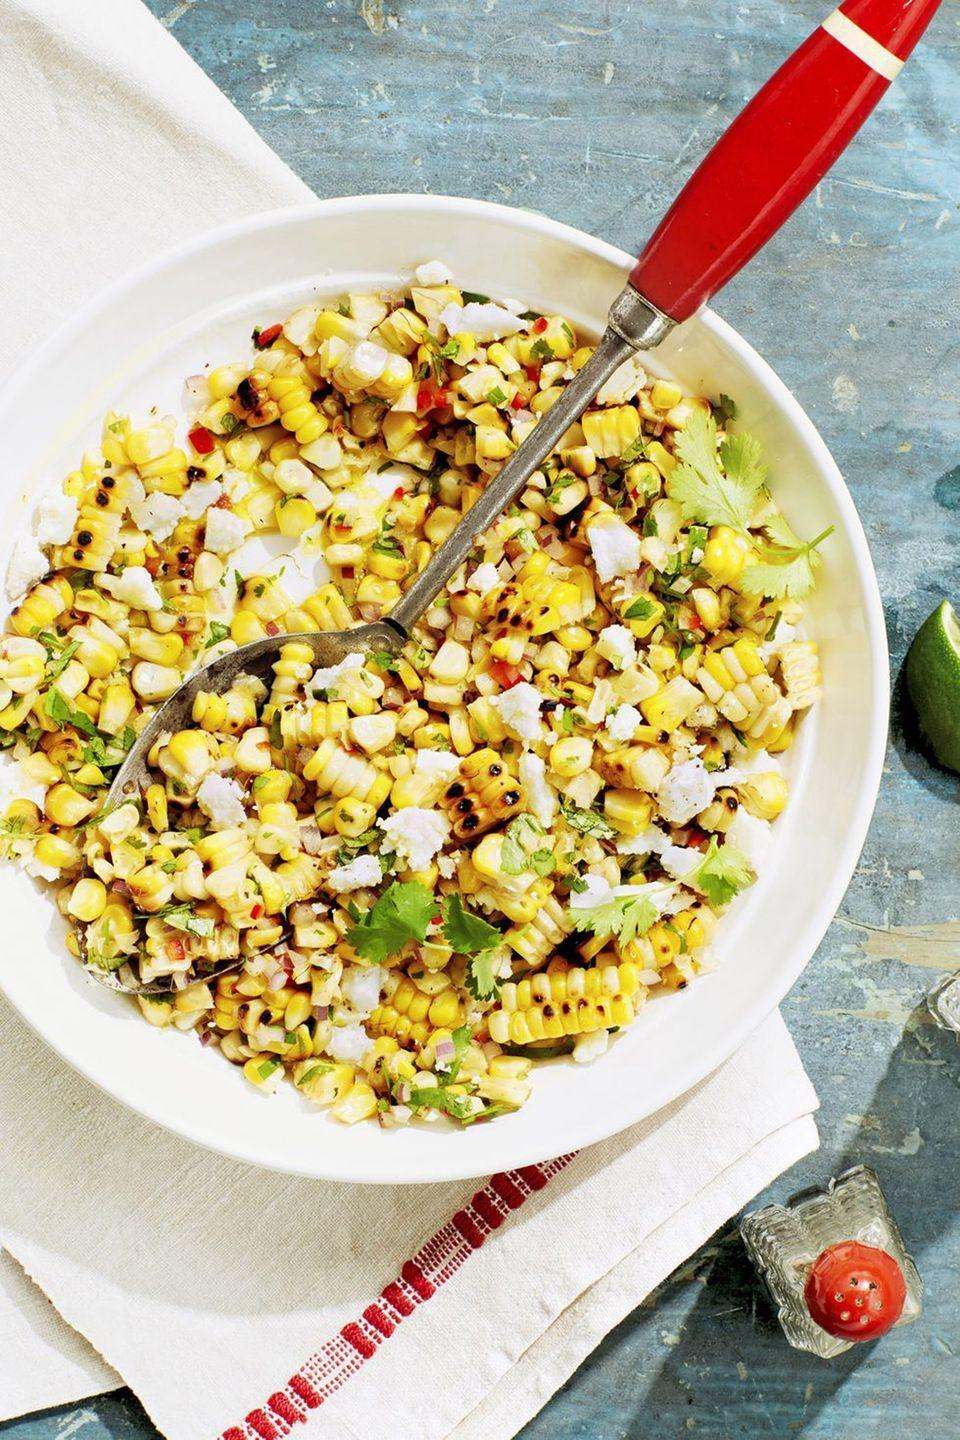 """<p>Finish off this grilled corn with cool queso fresco. It makes the mix absolutely addicting.<br></p><p><strong><a href=""""https://www.countryliving.com/food-drinks/a21347904/charred-corn-salad-recipe/"""" rel=""""nofollow noopener"""" target=""""_blank"""" data-ylk=""""slk:Get the recipe"""" class=""""link rapid-noclick-resp"""">Get the recipe</a></strong><strong>.</strong> </p>"""